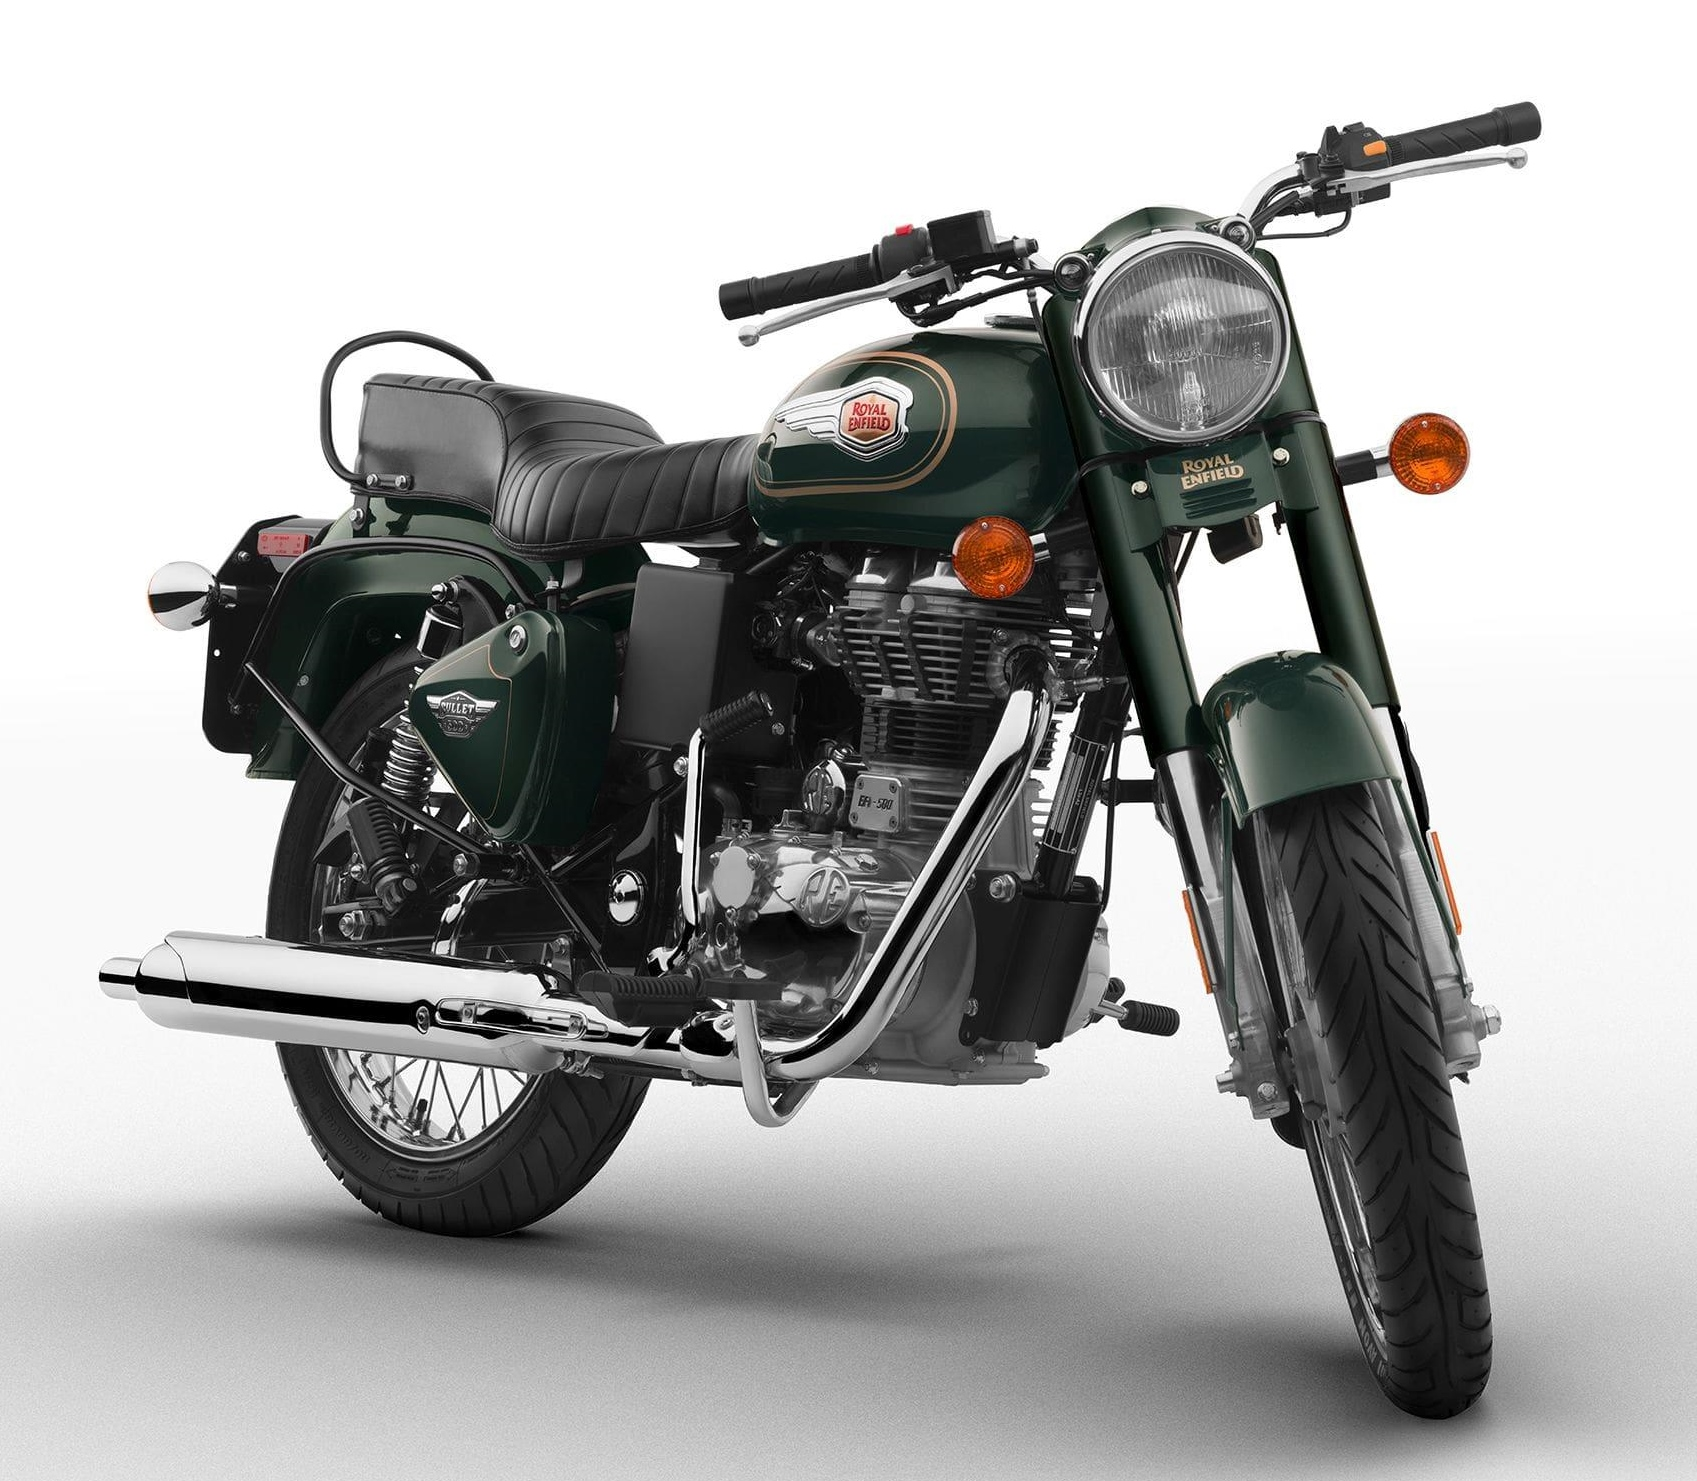 royalenfield_bullet_forestgreen_02jpg